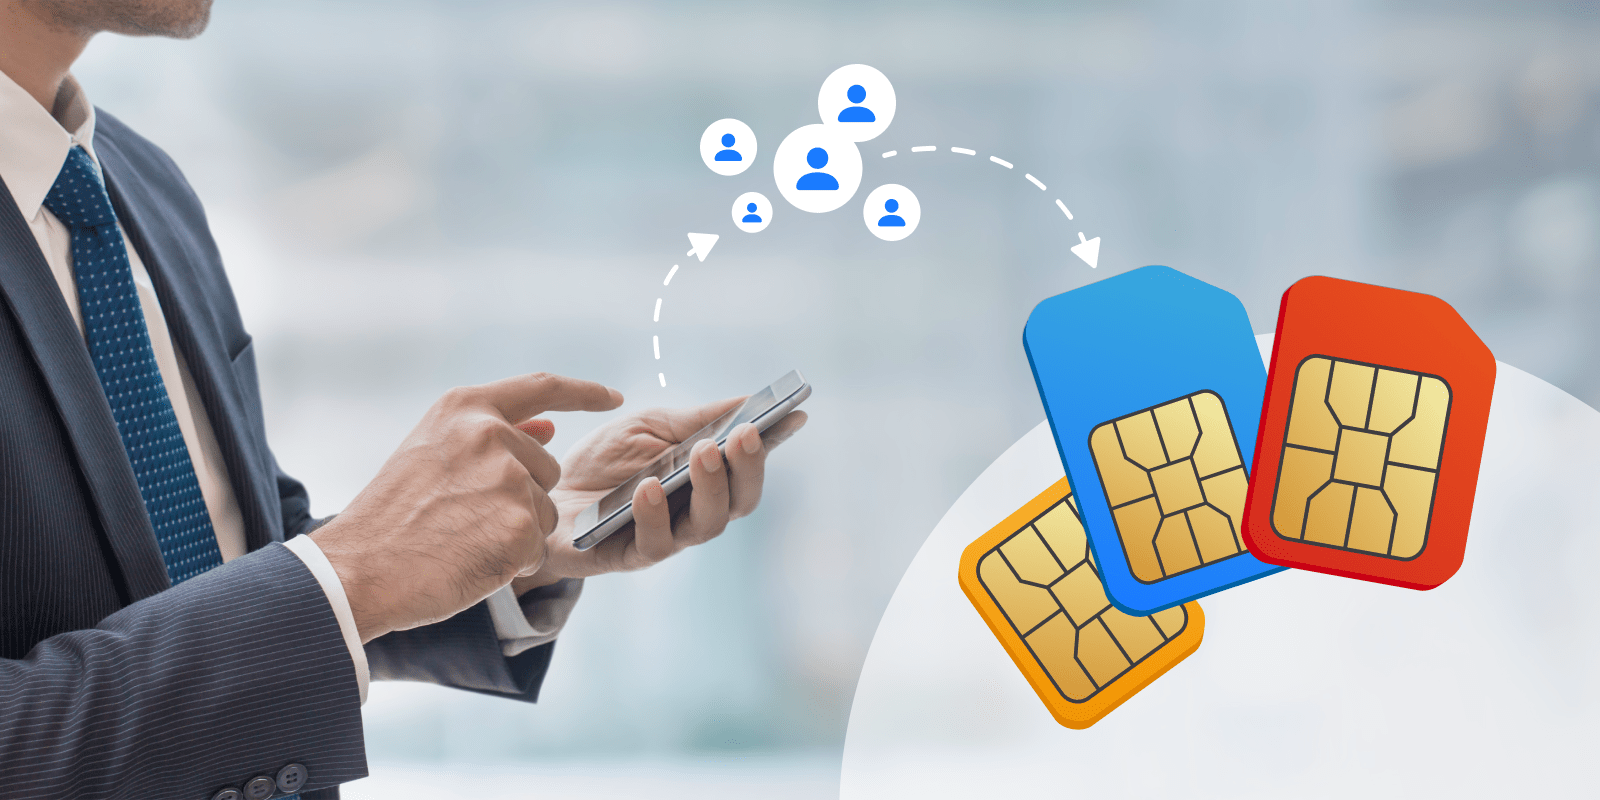 How to transfer contacts from phone to SIM card on Samsung?